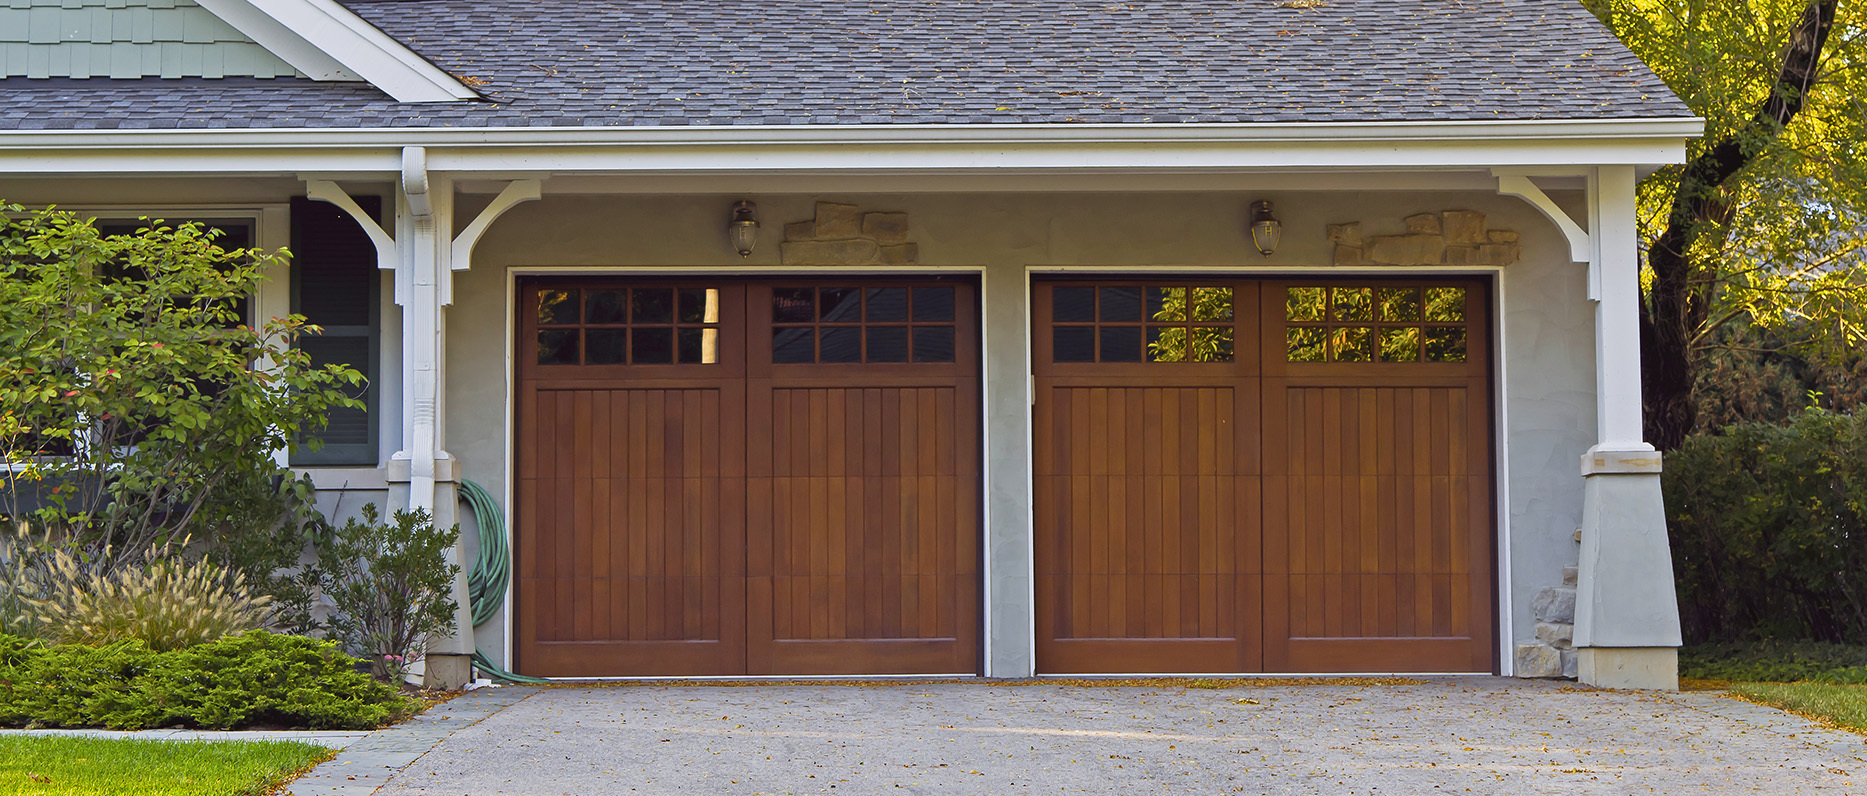 Overhead Door overhead door little rock images : Coney Garage Door | Conway & Little Rock | Garage Door Repair